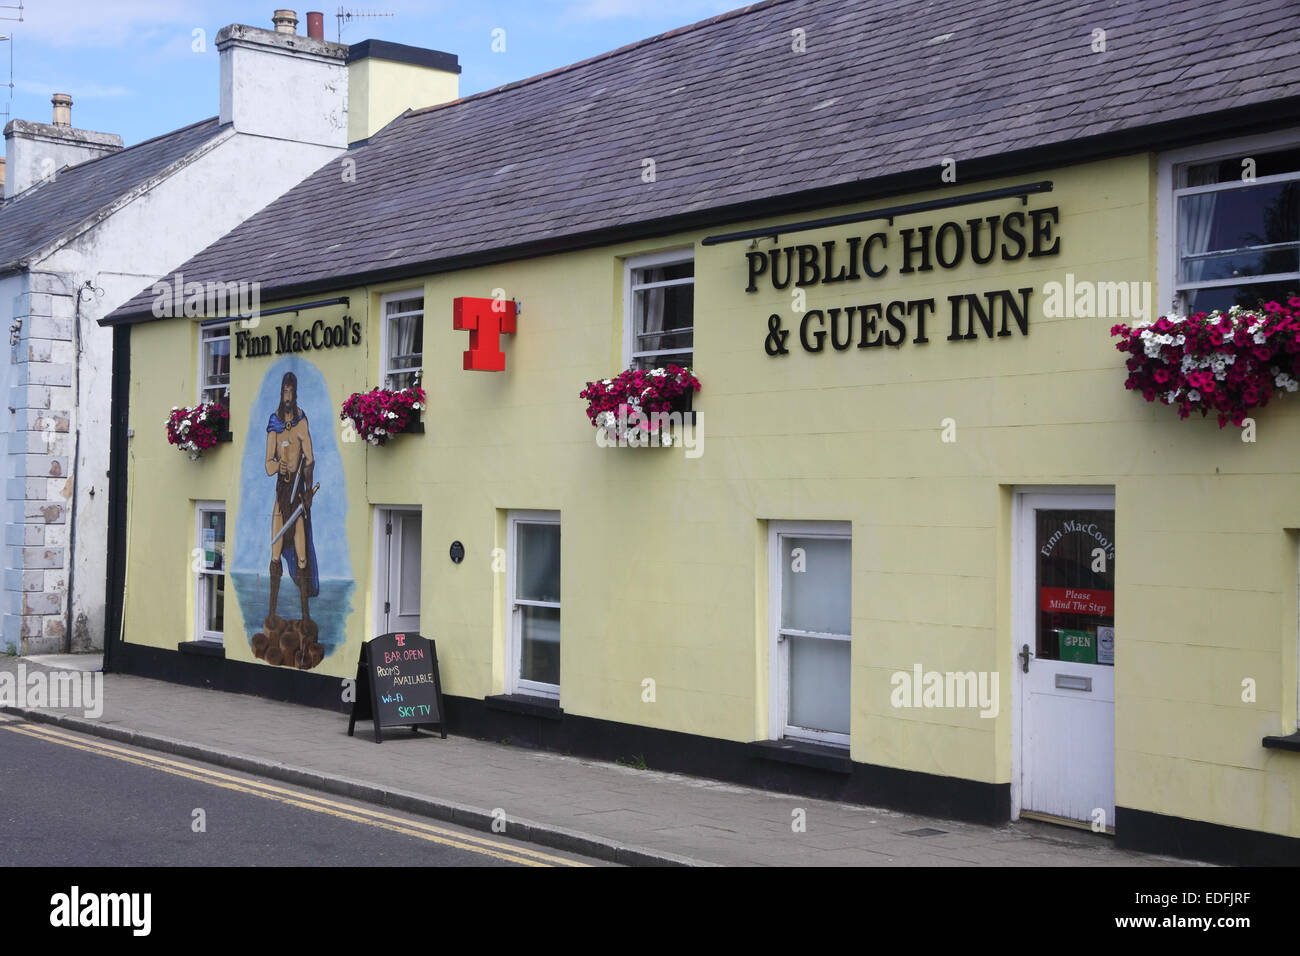 Finn MacCool's public house and guest house in Bushmills, County Antrim, Northern Ireland - Stock Image